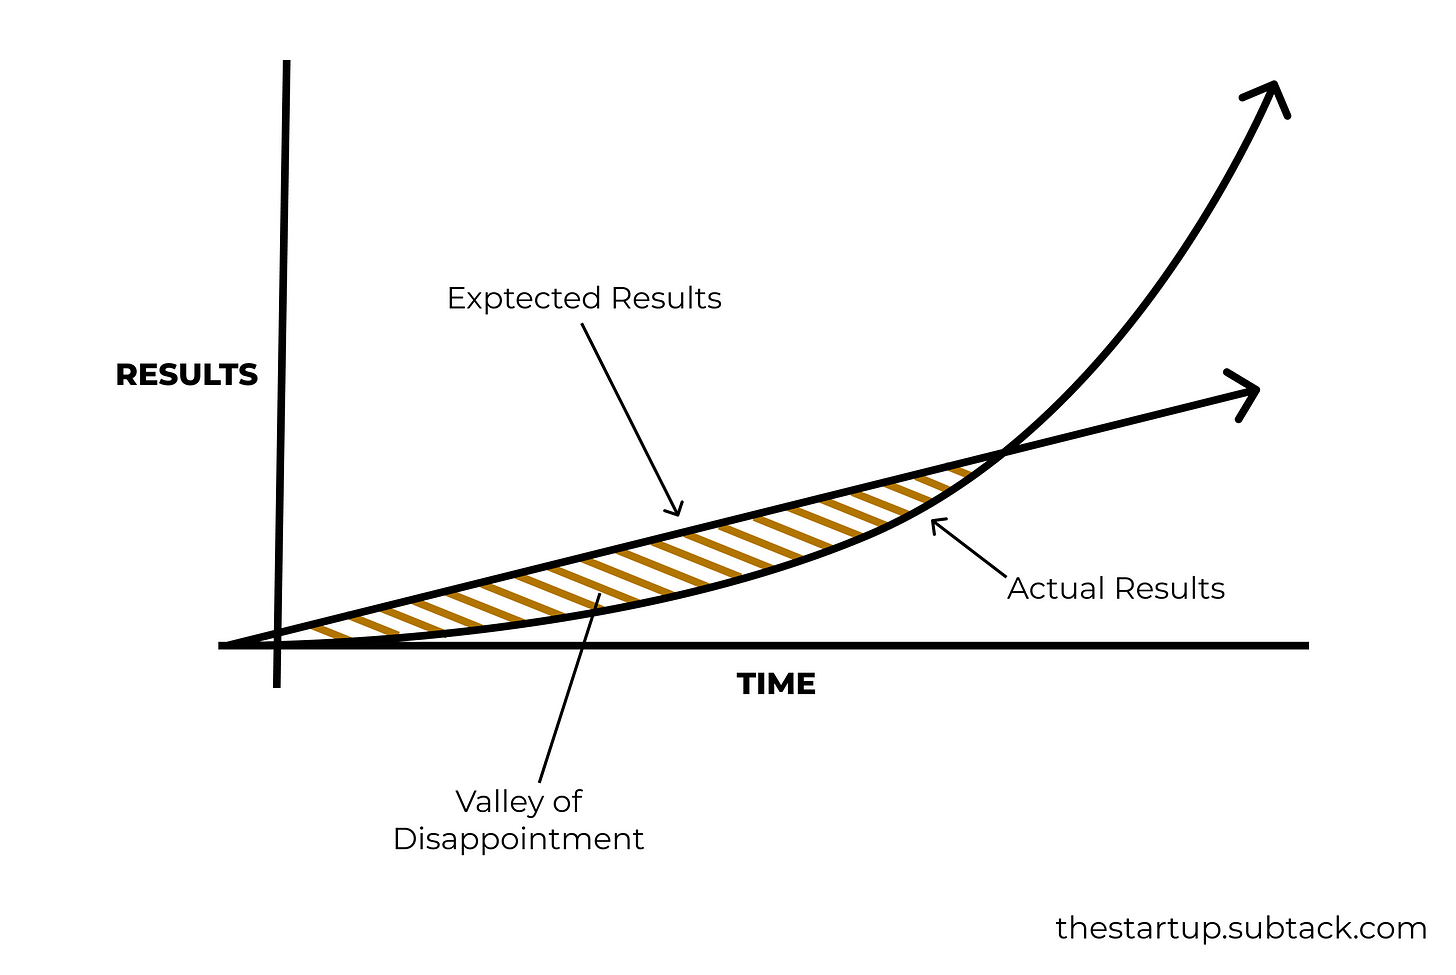 actual vs expected valley of disappointment